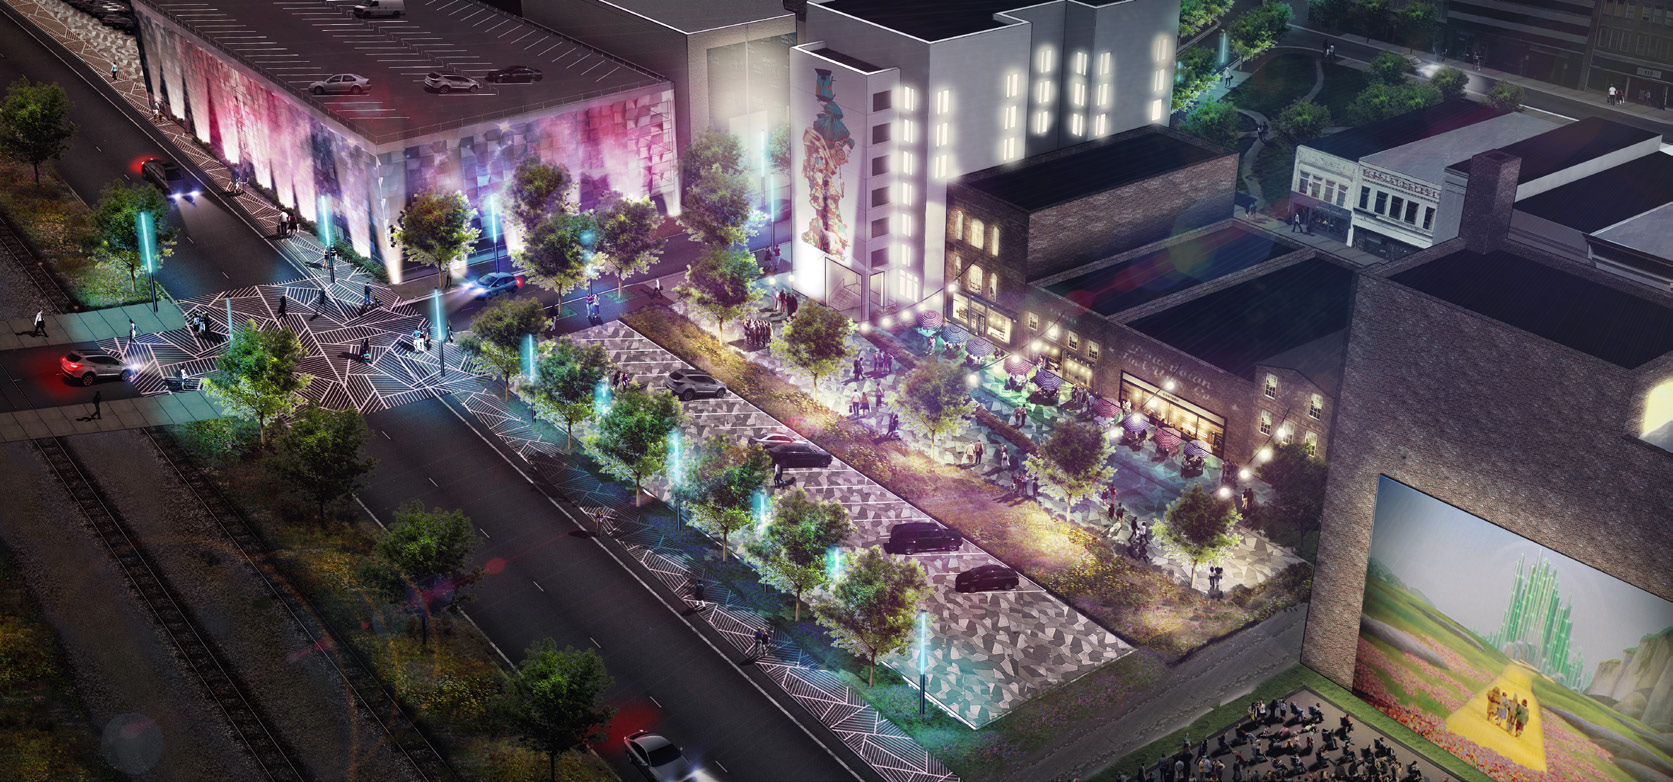 """Image of """"Back Porch"""" concept area at Ramseur/Corcoran Streets from SmART Vision Plan. © 2017 Olalekan Jeyifous. All Rights Reserved"""